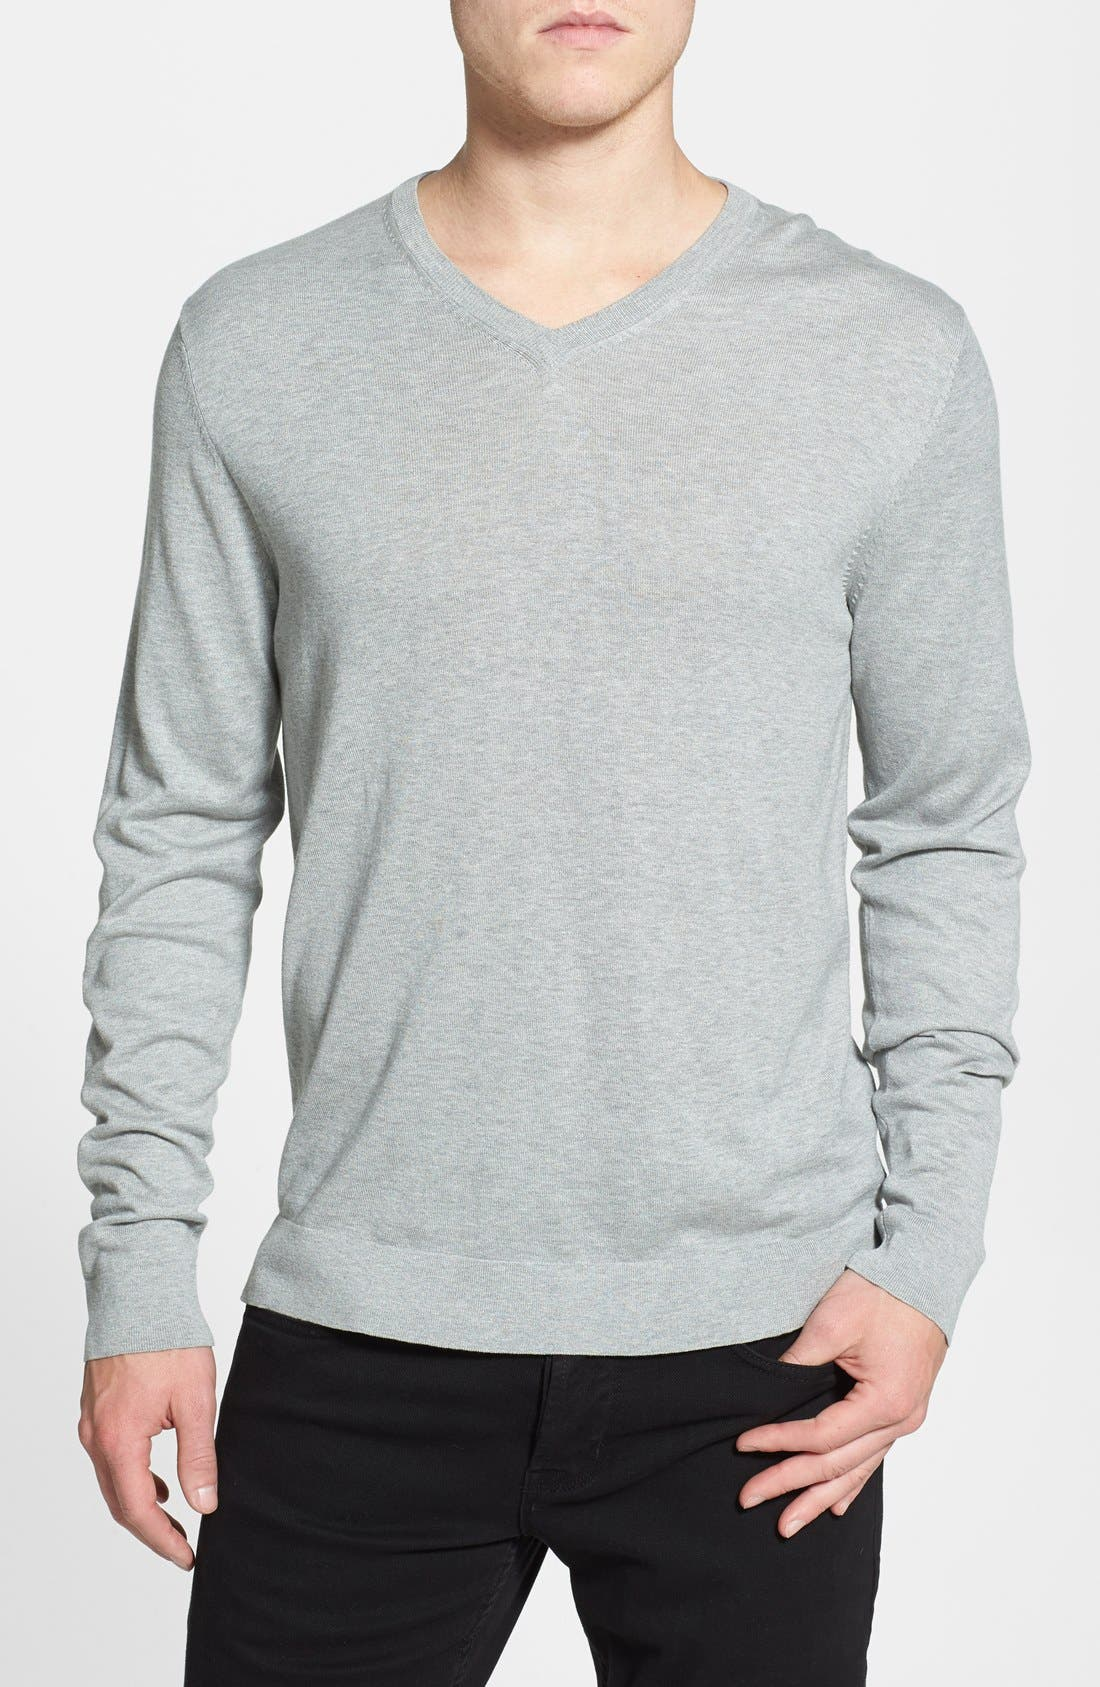 Main Image - Kenneth Cole Collection Silk & Cotton V-Neck Sweater